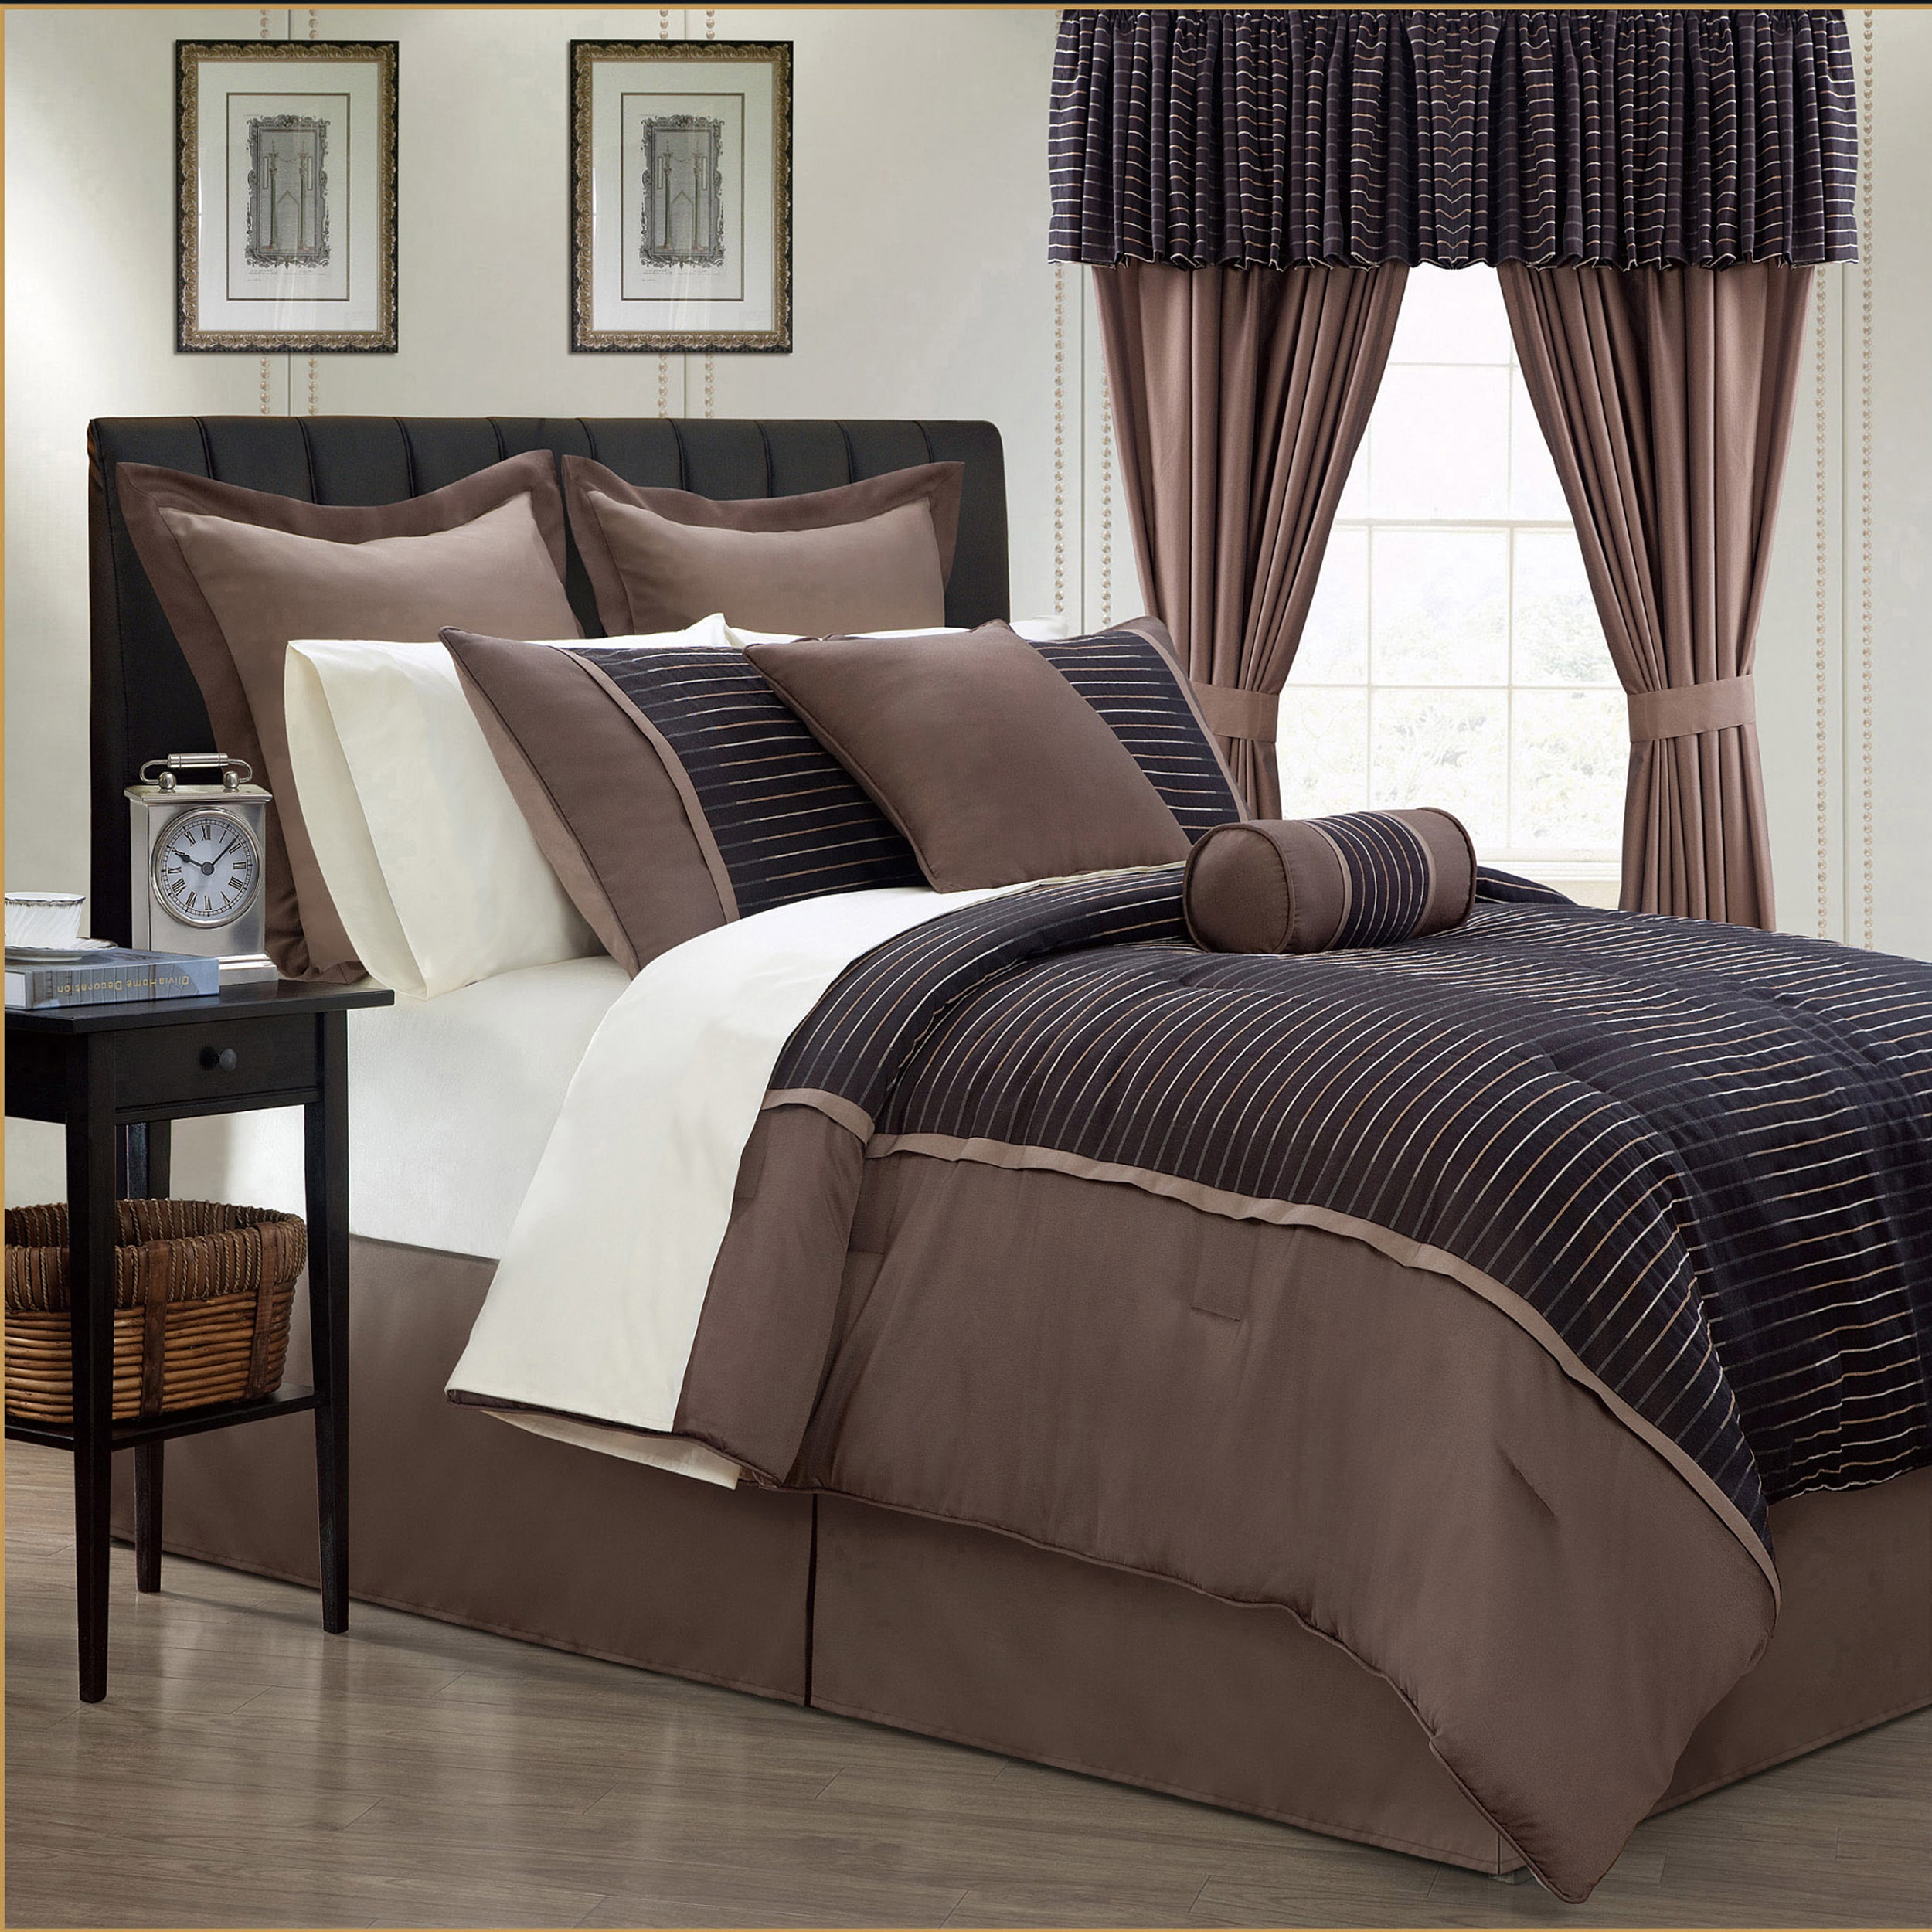 Limbo 24-piece Brown Contemporary Bed in a Bag with Sheet Set - Free  Shipping Today - Overstock.com - 13532715